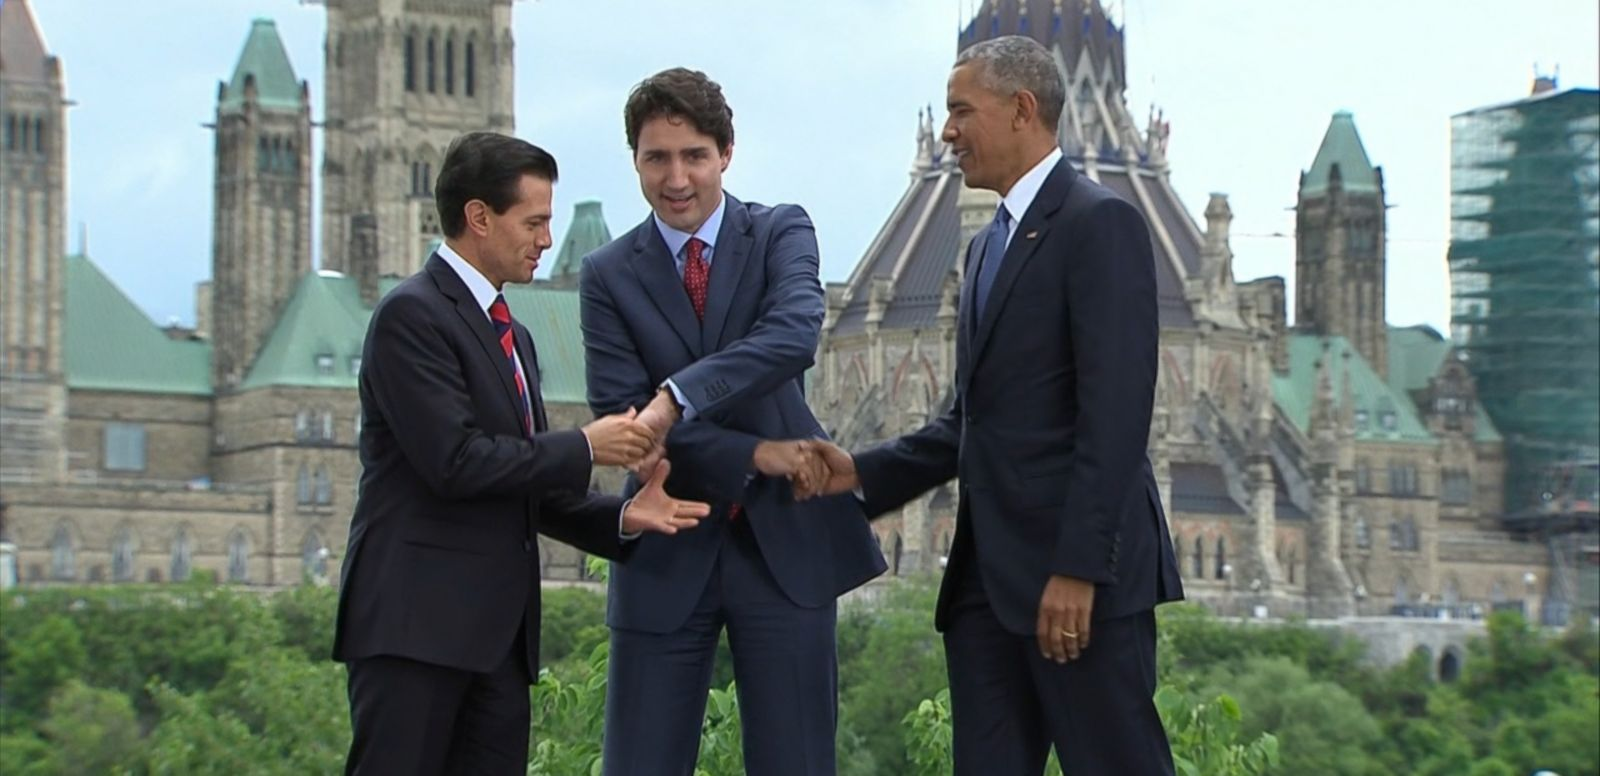 VIDEO: The handshake happened between President Obama, Canadian Prime Minister Justin Trudeau and Mexican President Enrique Pena Nieto.